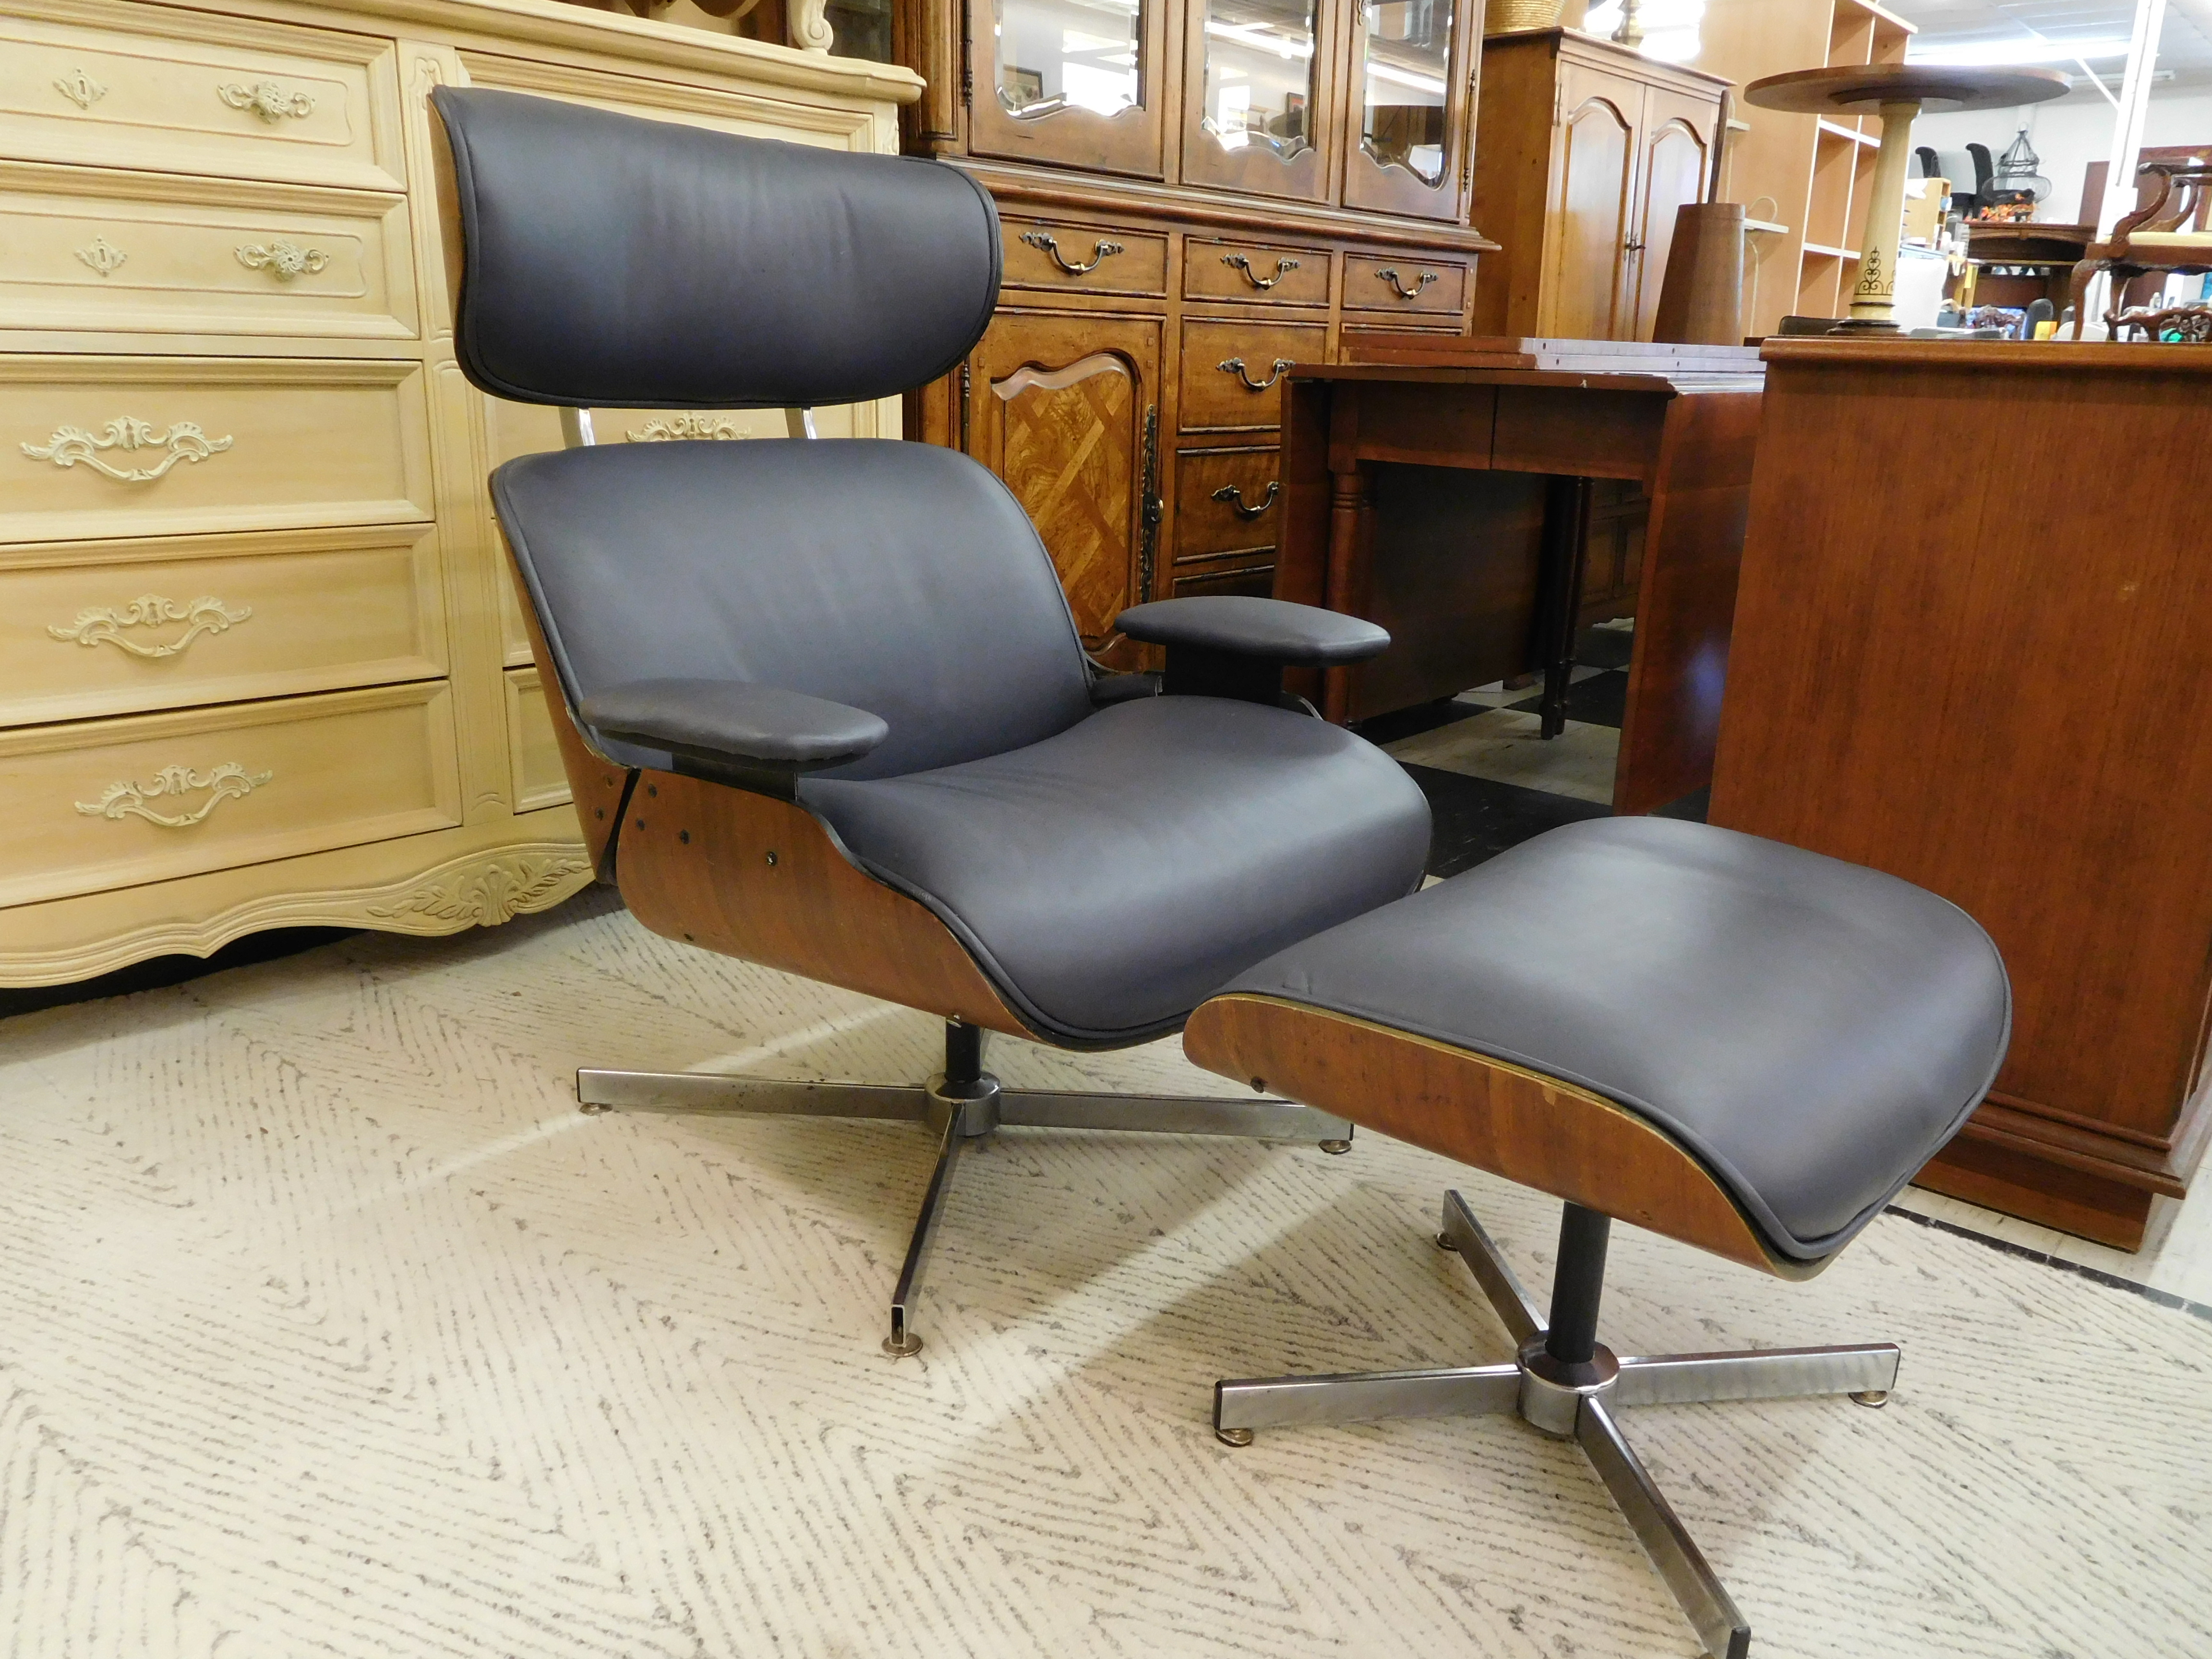 Mid Century Eames Replica Leather Lounge Chair and Ottoman in Italian Leather